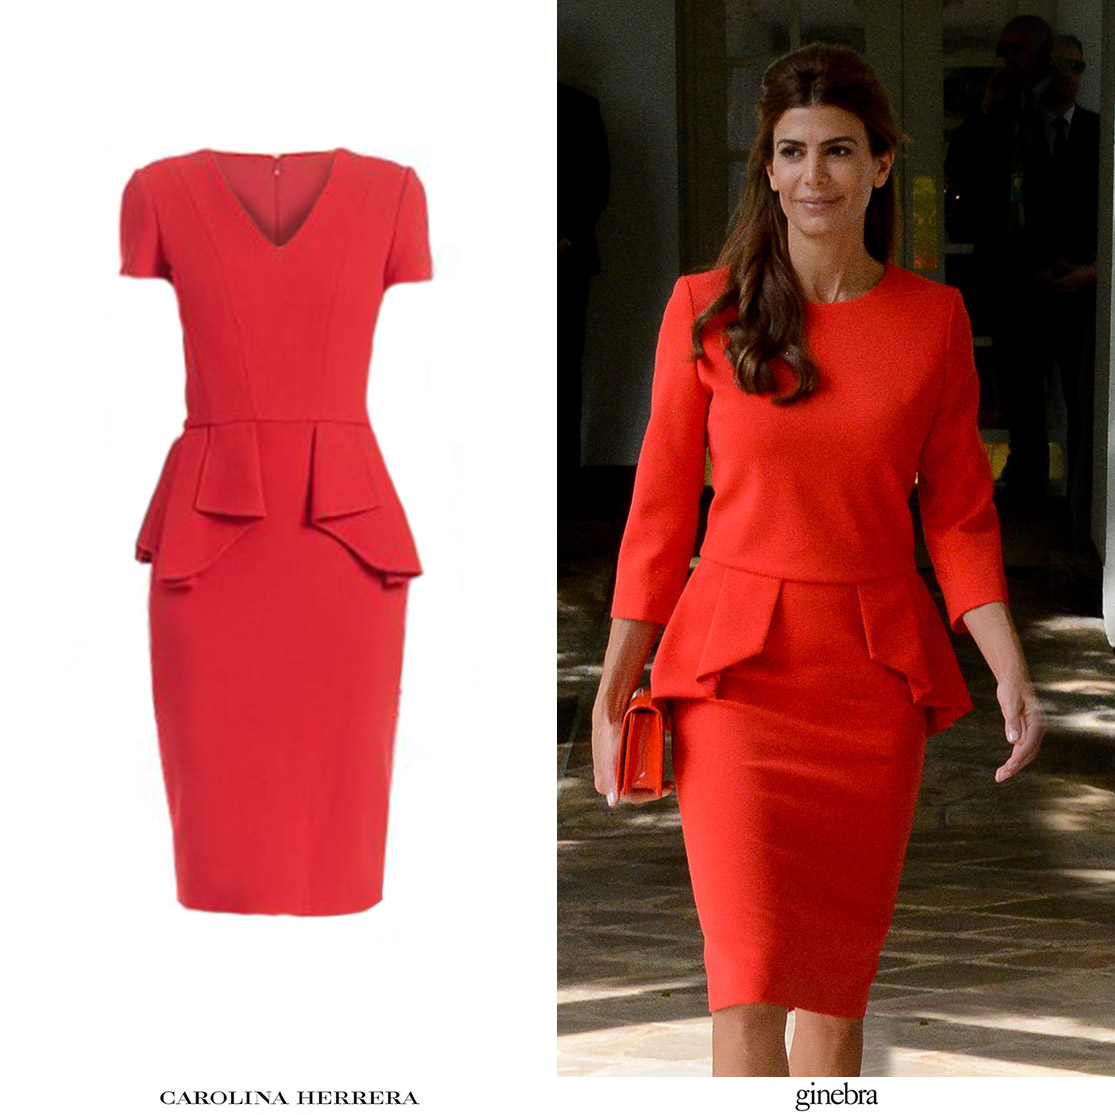 Copias_Argentinas_Inspiraciones_Carolina_Herrera_Red_Peplum_Dress_Ginebra_Vestido_Rojo_Prive_Juliana_Awada_Estados_Unidos_Trump.jpg